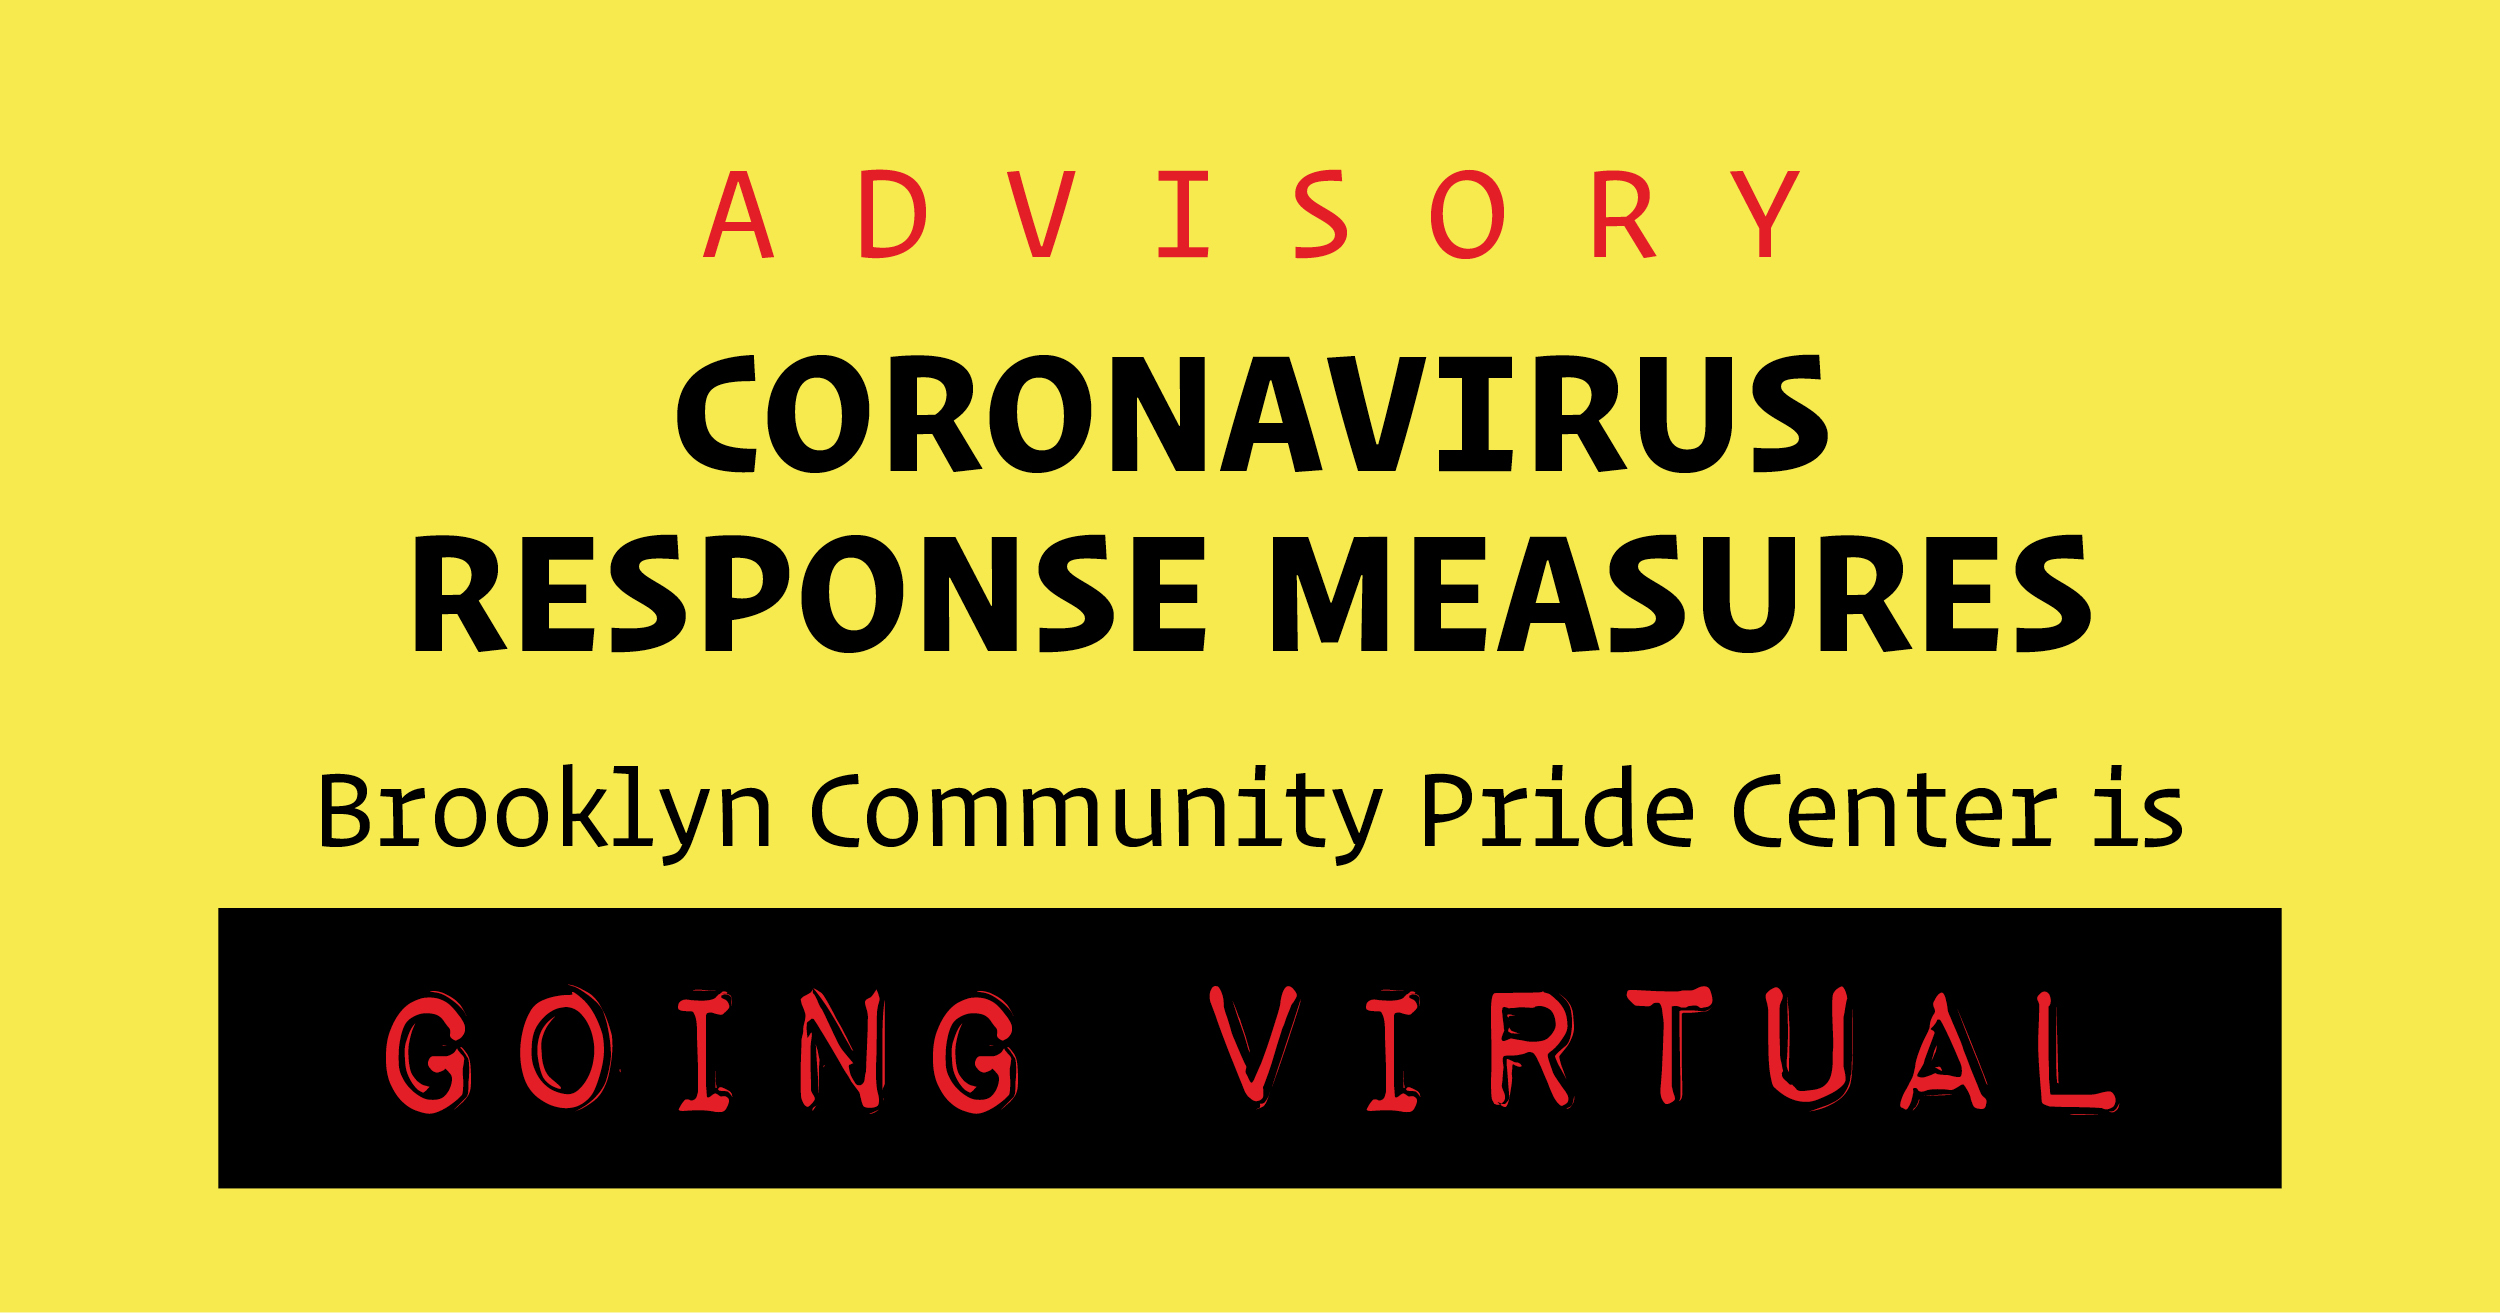 Coronavirus Response Measures for Brooklyn Community Pride Center